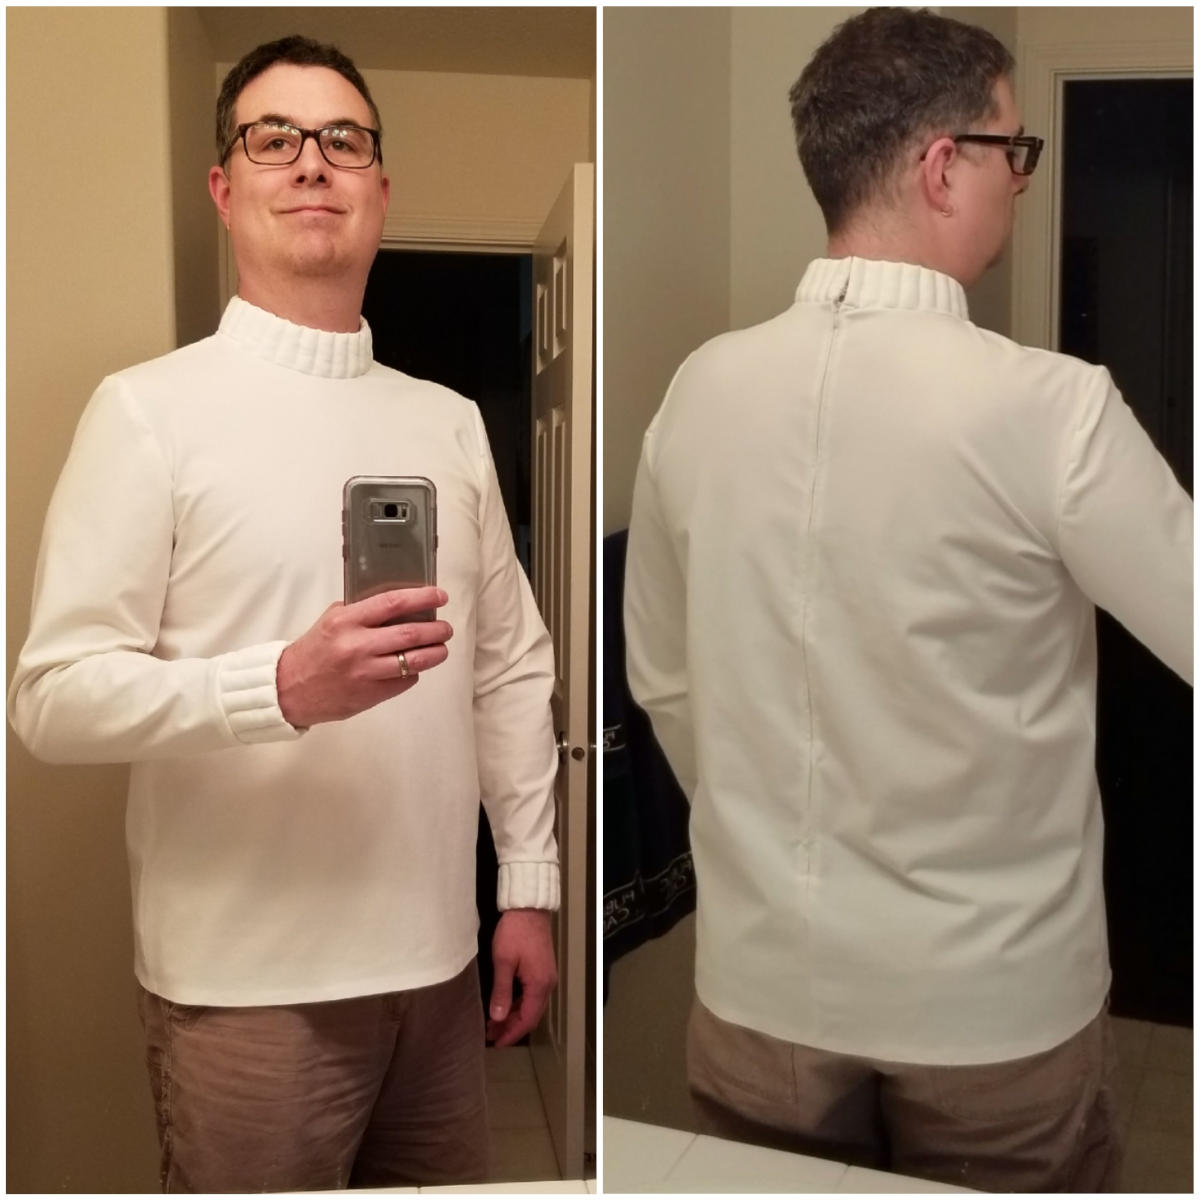 July 28, 2019: The finished shirt